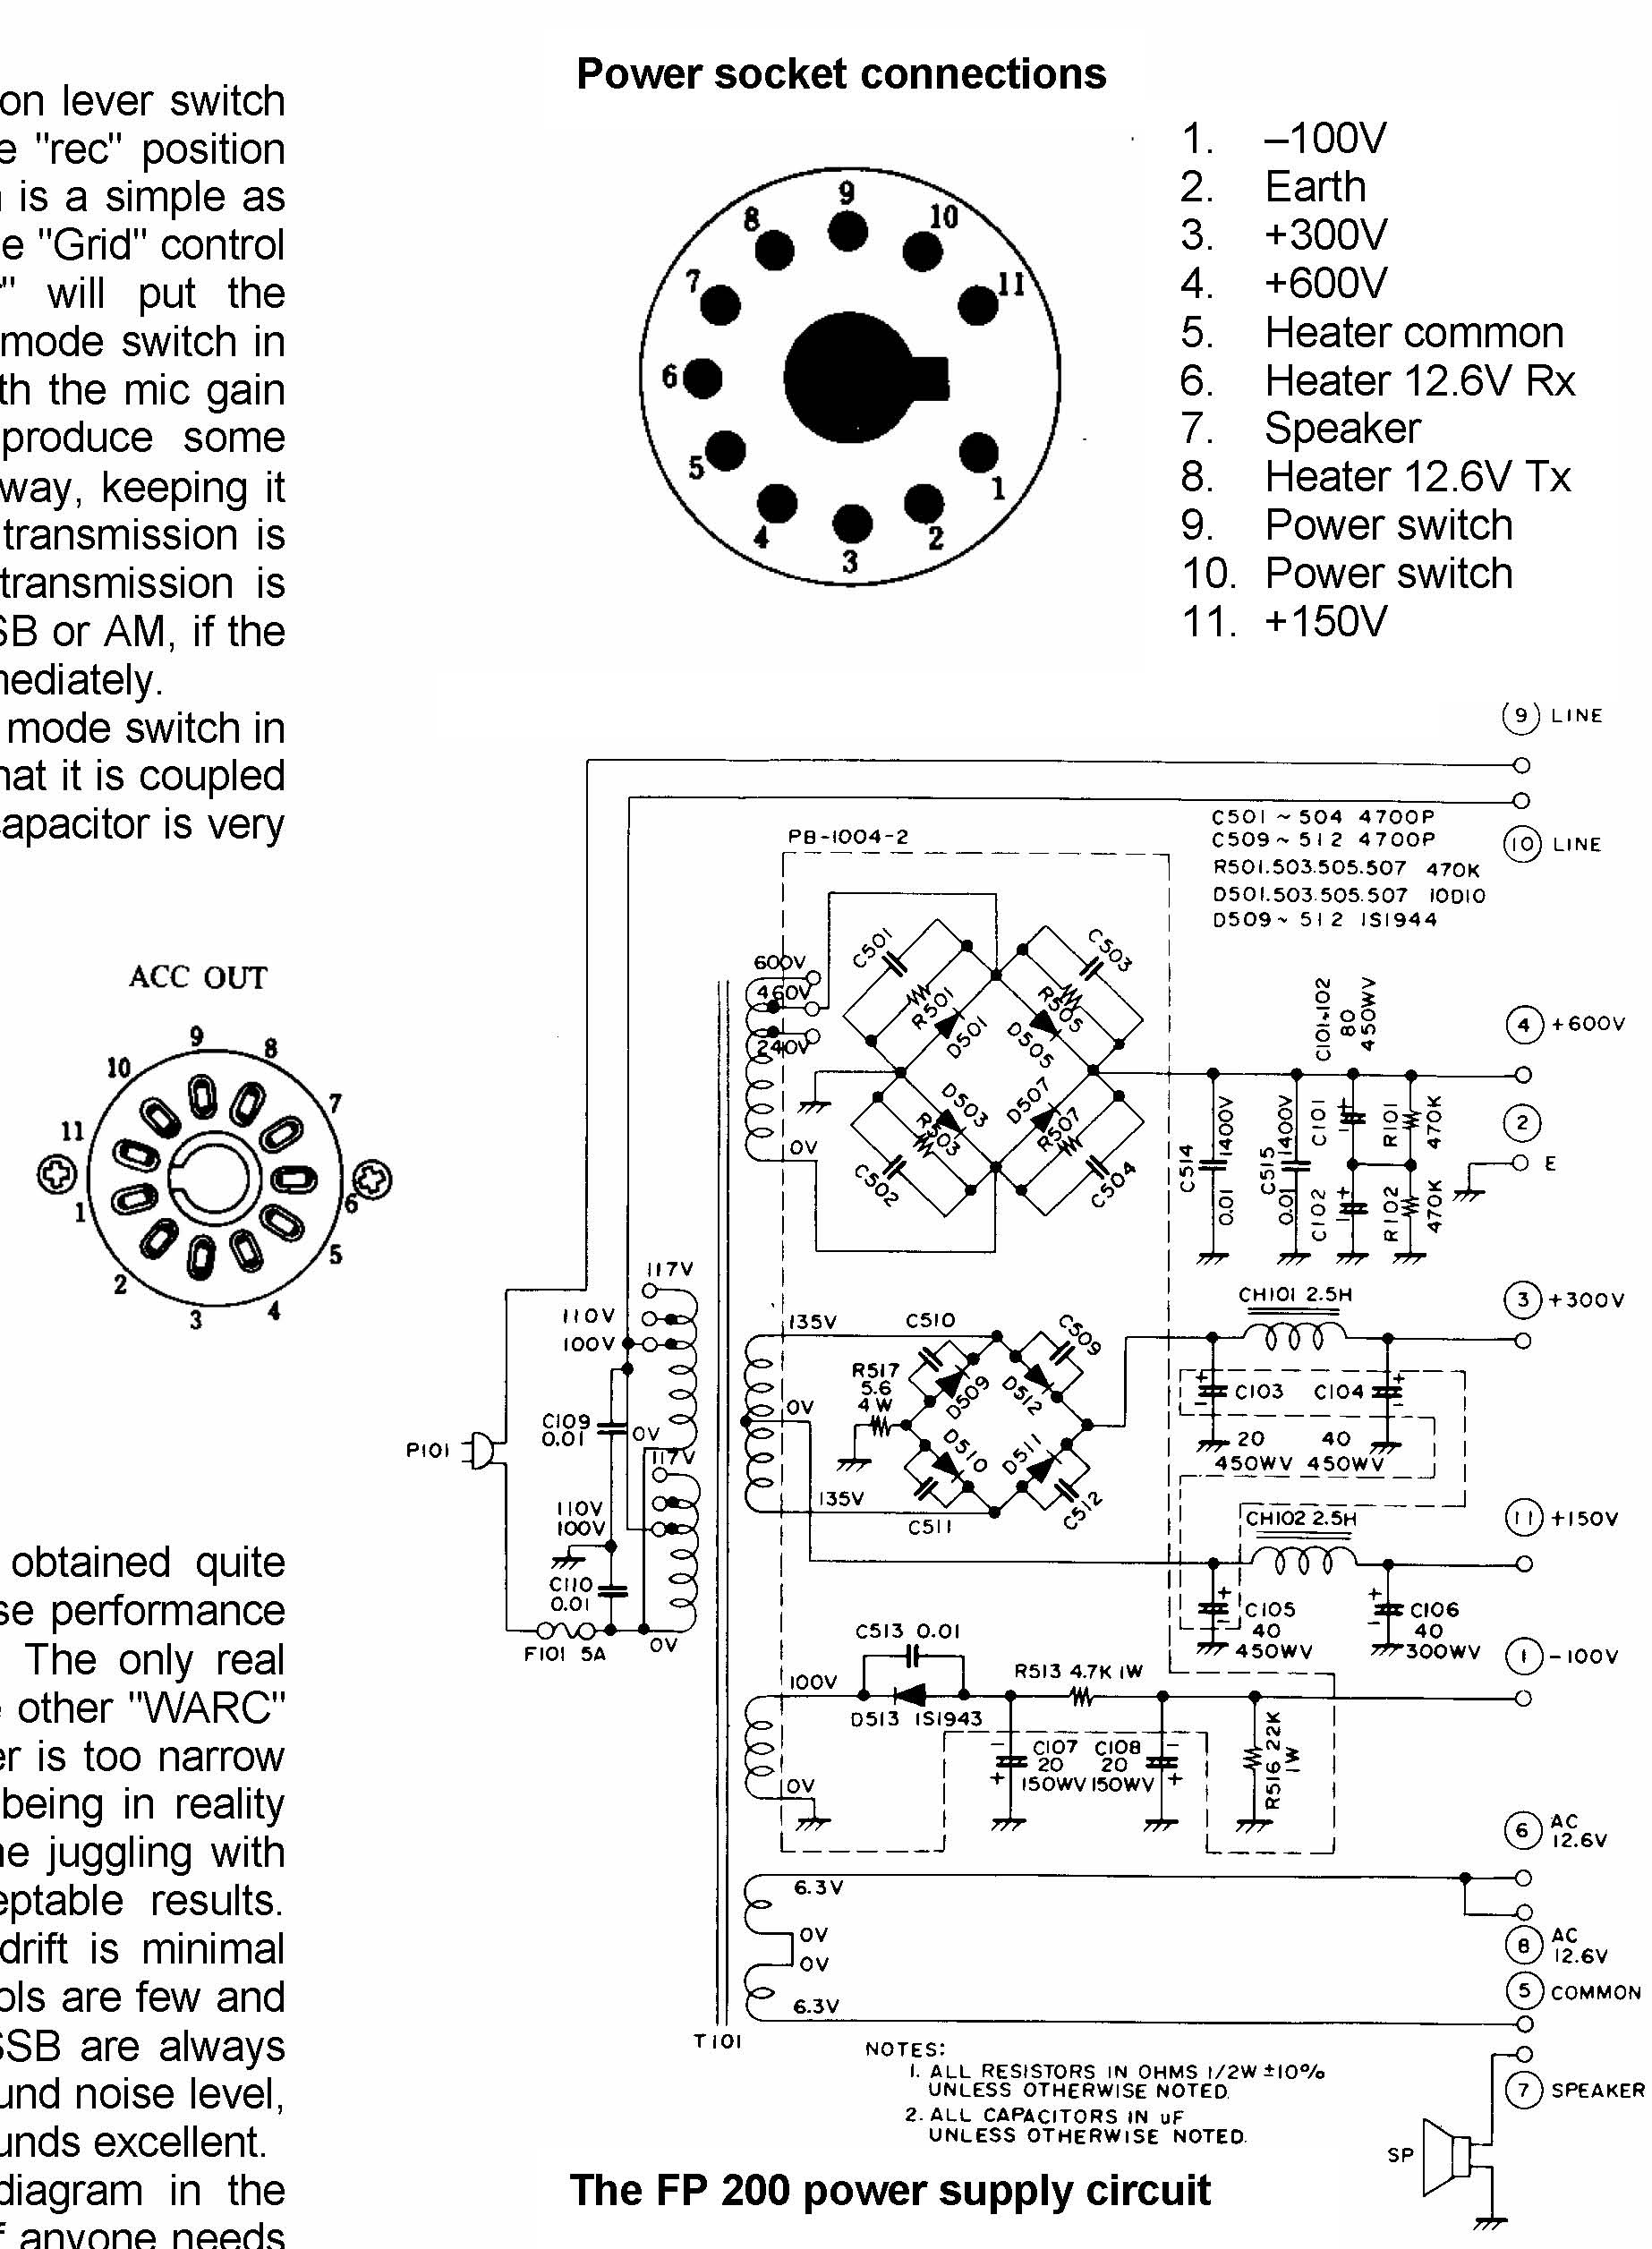 tempo one aka ft 200 qrz forums light switch to schematic to schematic wiring diagram